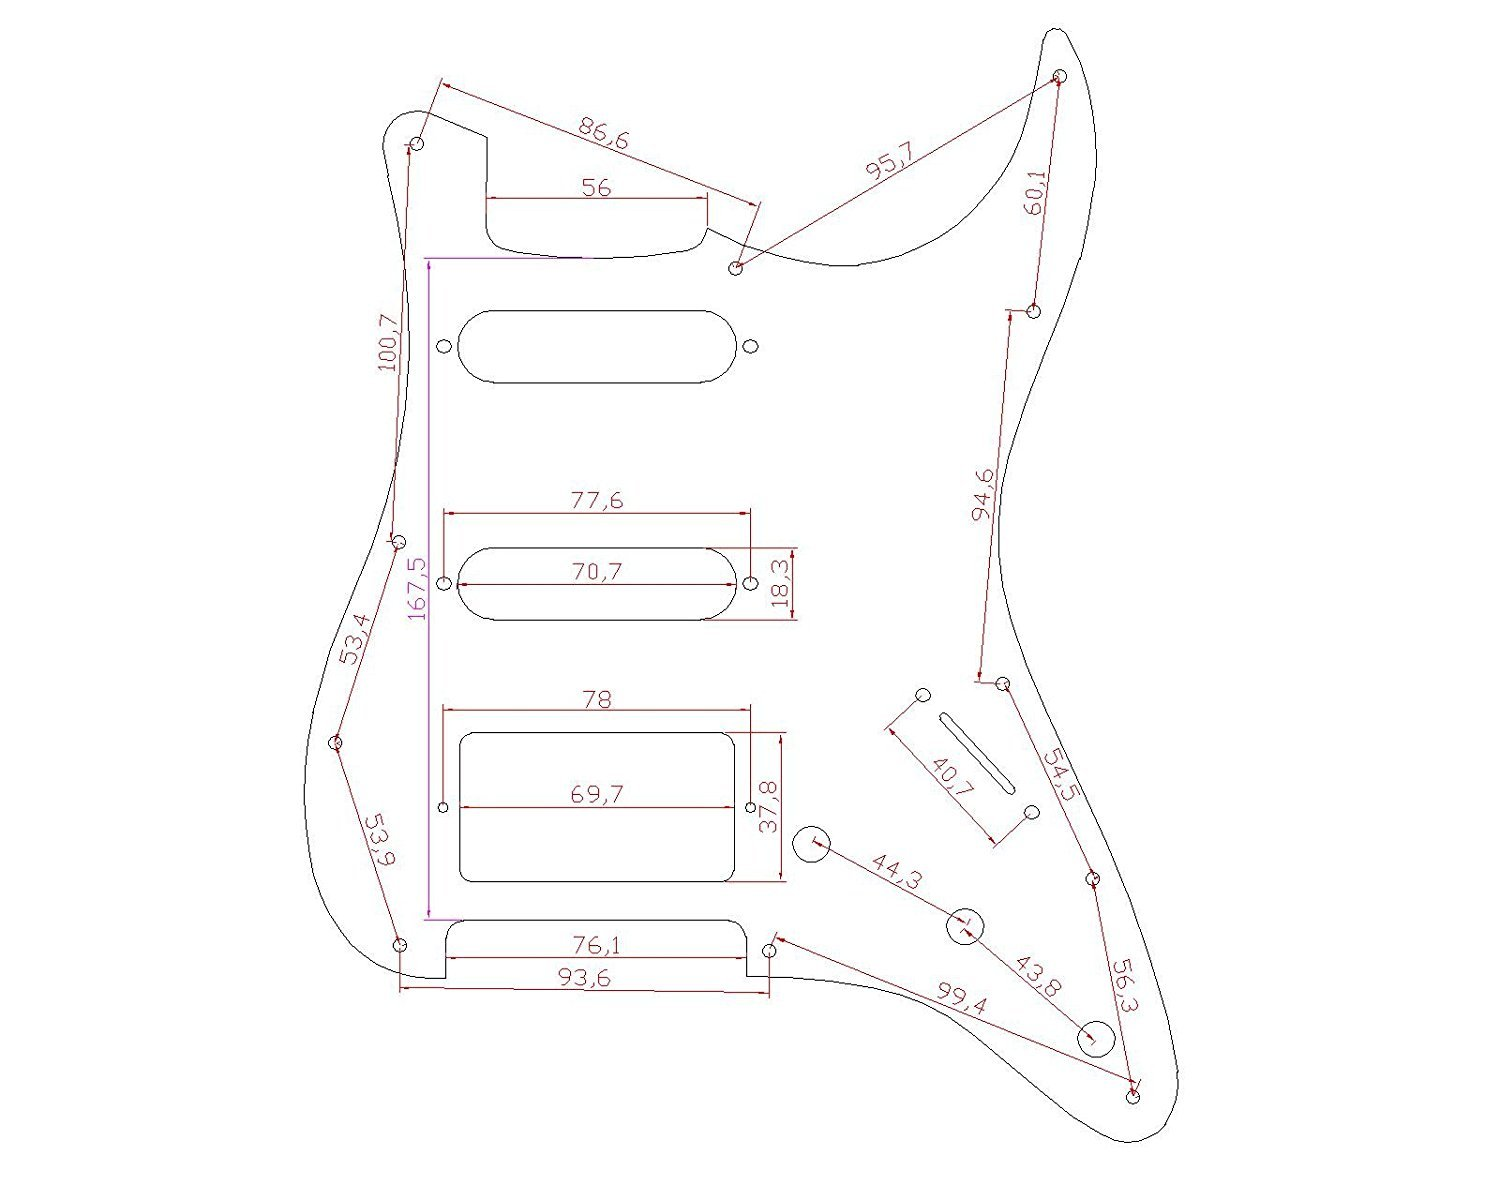 Stratocaster-Pickguard-For-Fender-US-Mexico-Strat-Electric-Guitar thumbnail 16